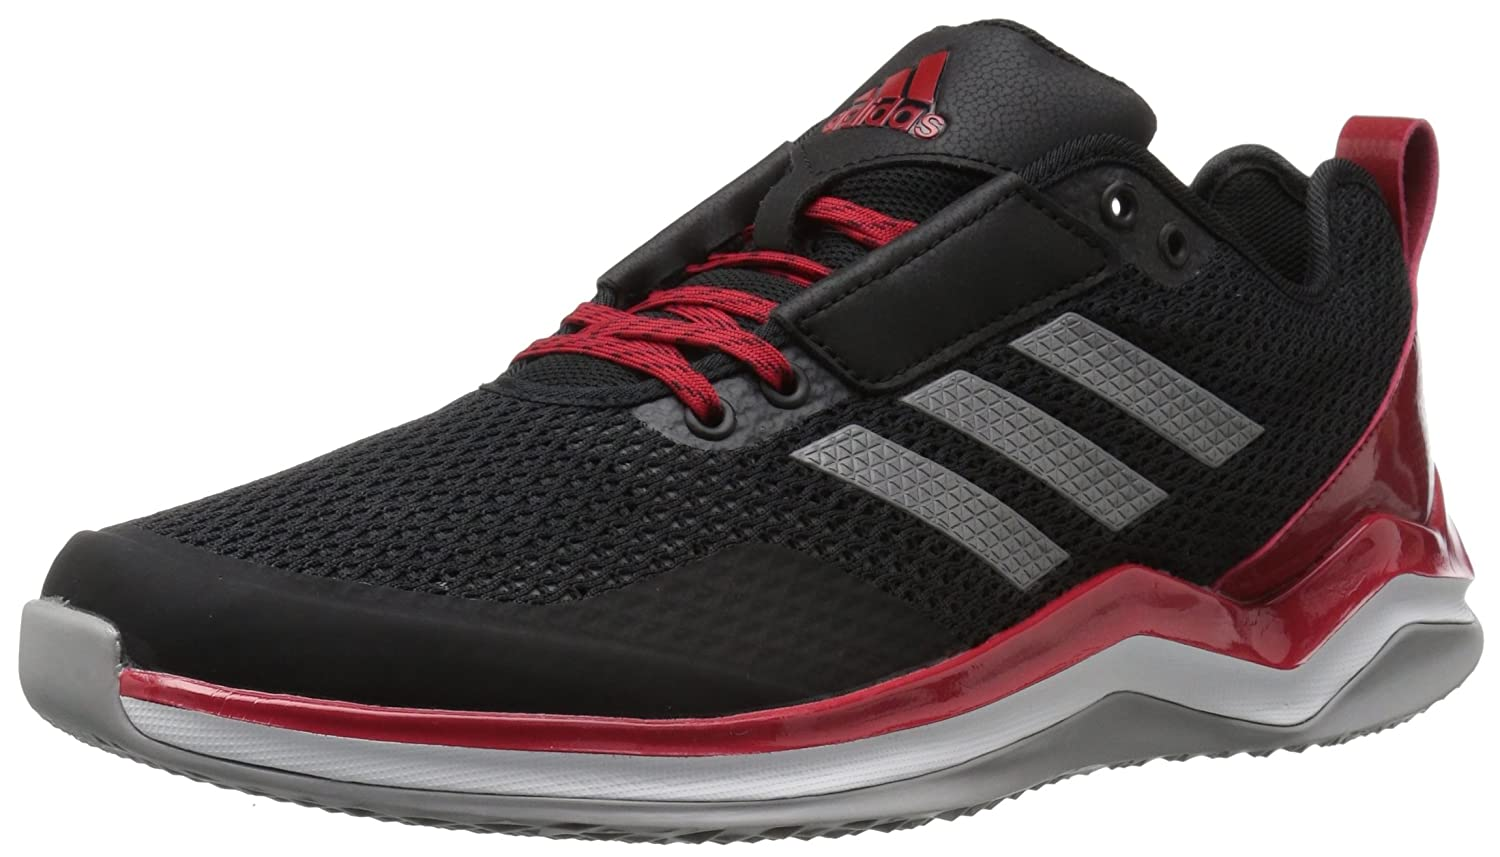 adidas メンズ Speed Trainer 3.0 B01LXXVOOO 10 D(M) US|Black/Iron/Power Red Black/Iron/Power Red 10 D(M) US